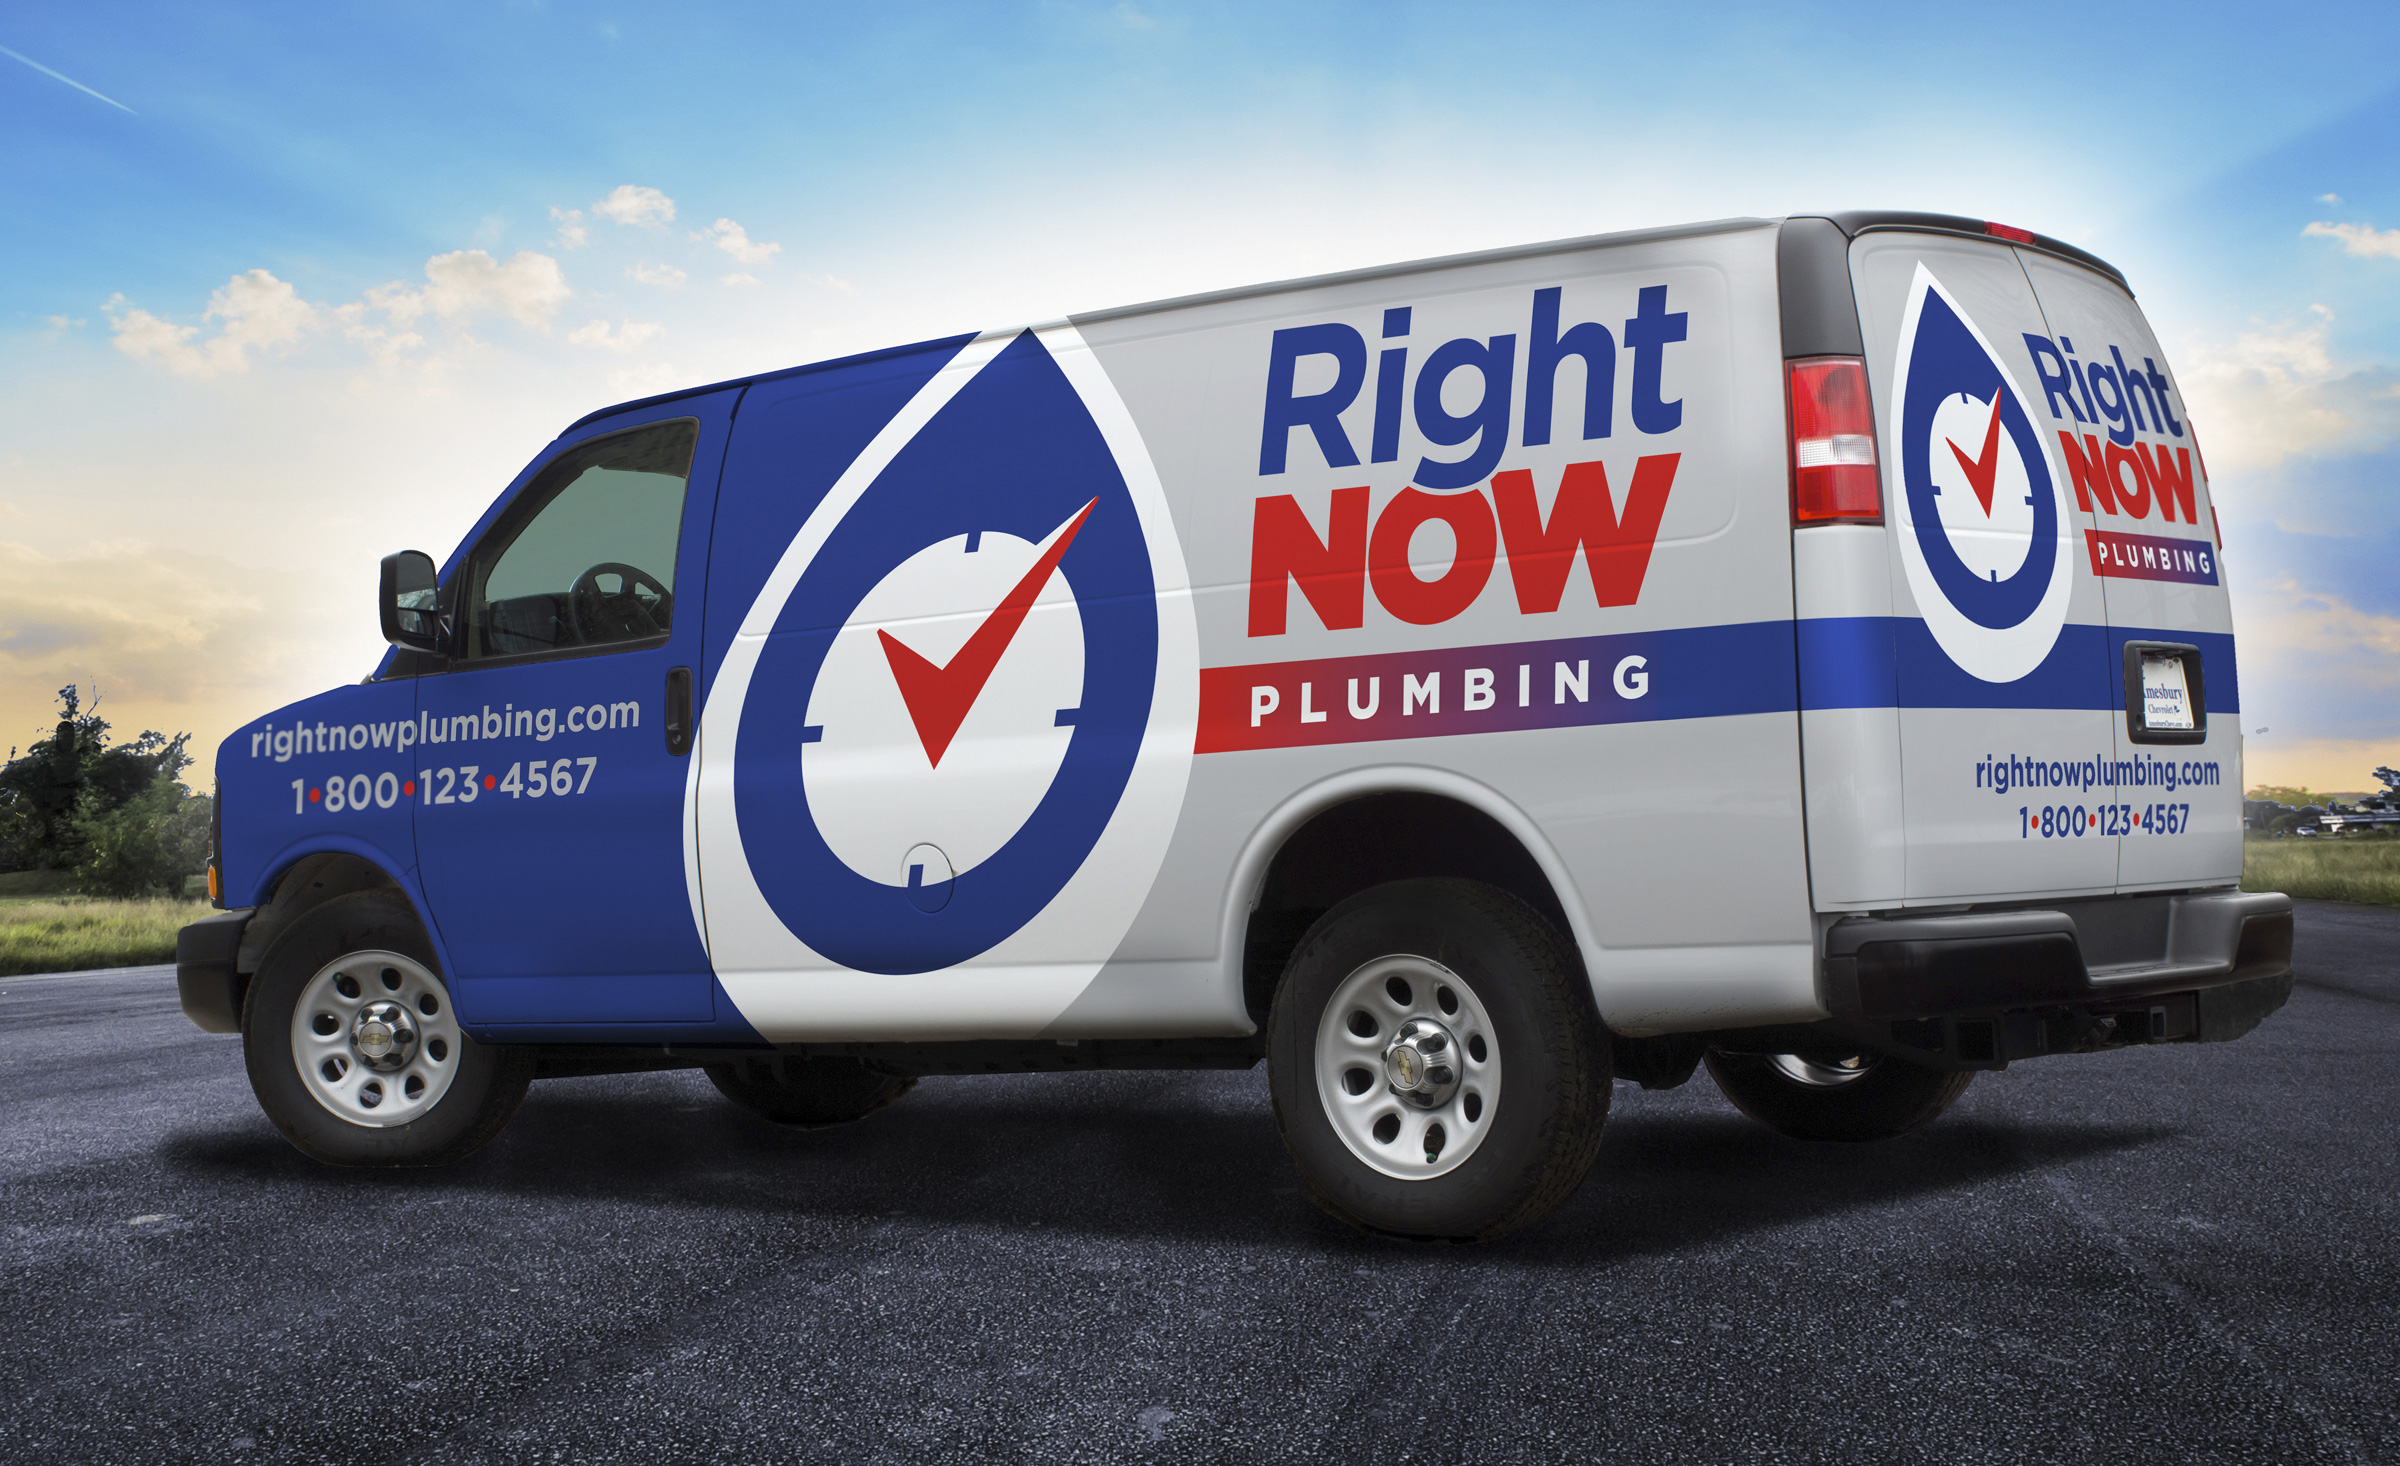 van-wrap-right-now-plumbing.jpg